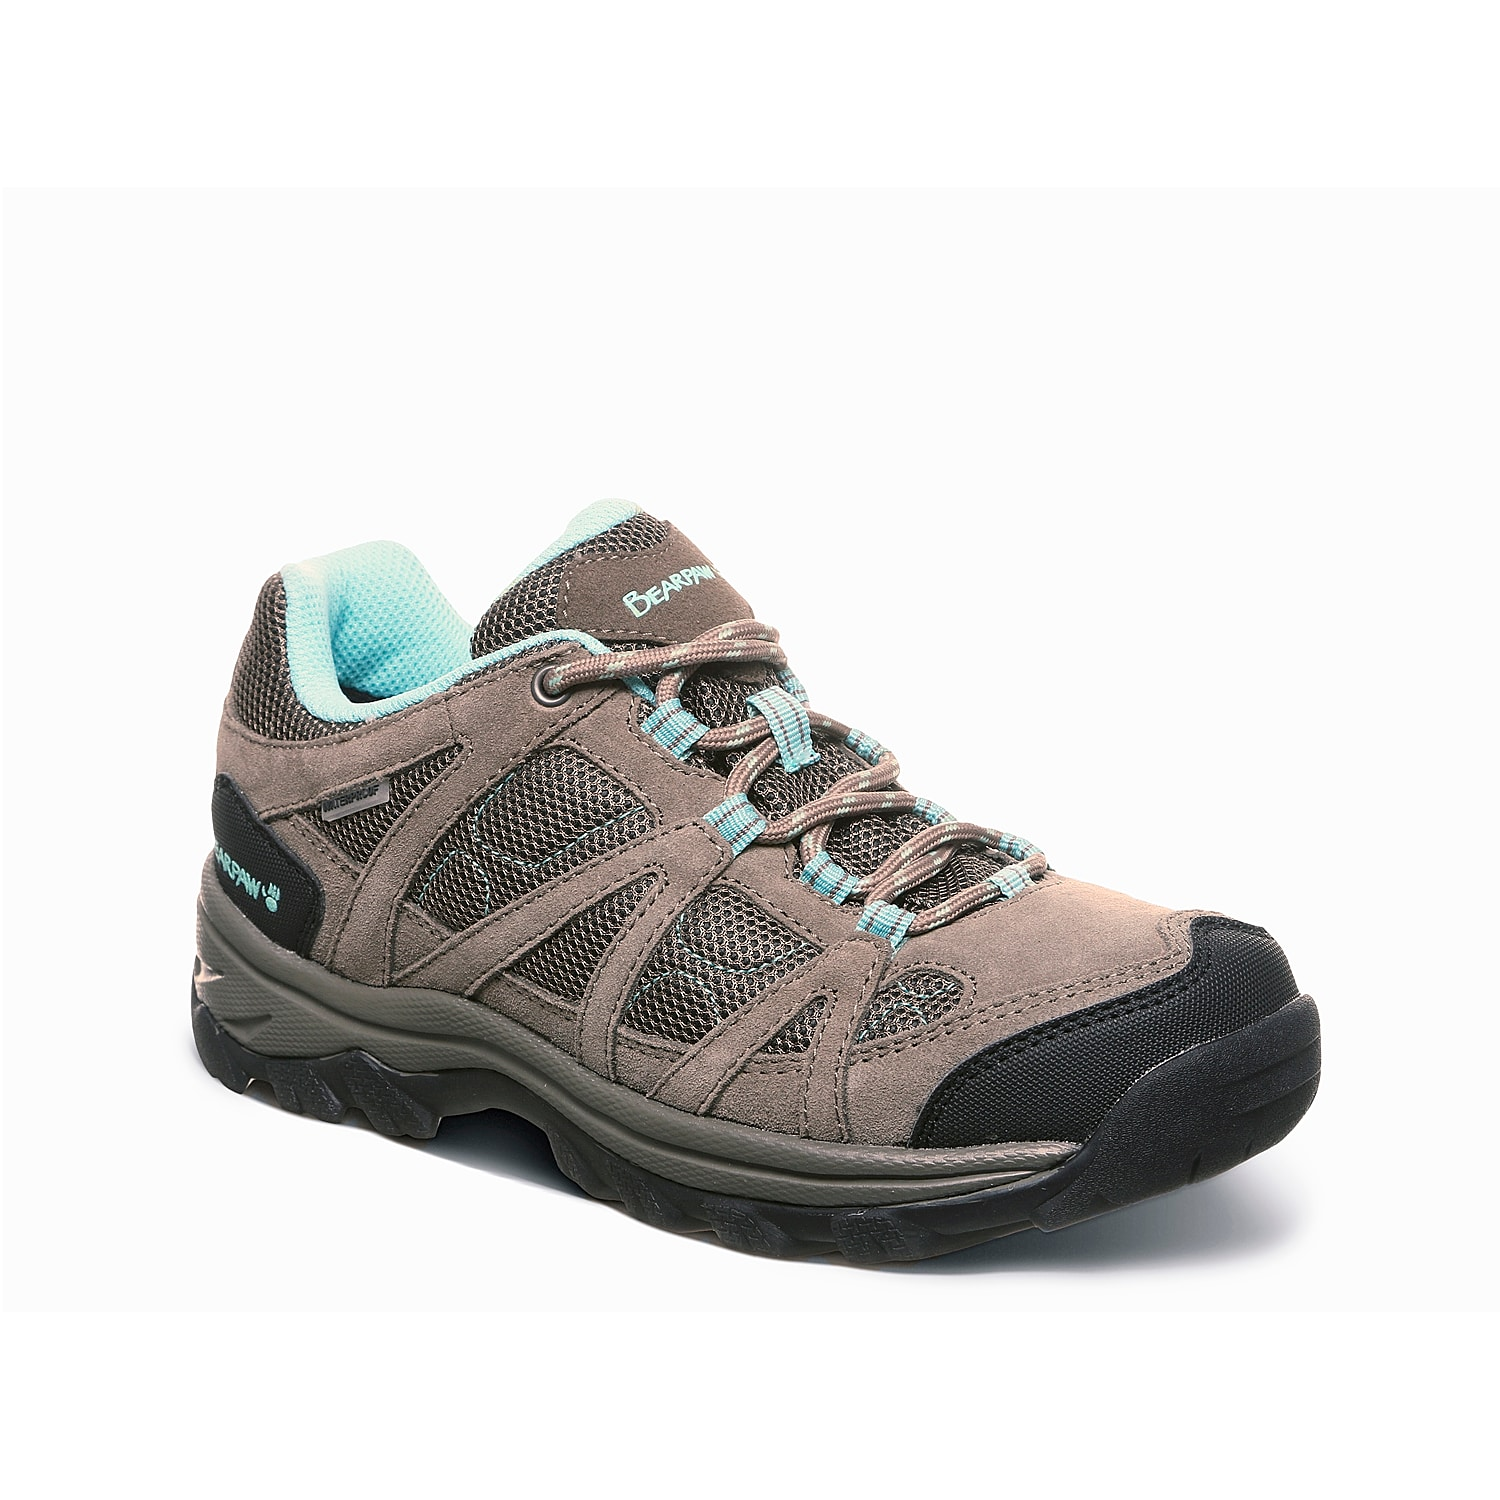 Supportive comfort starts with the Olympus hiking shoe from Bearpaw. An EVA midsole provides shock-absorption while the traction sole ensures stability.